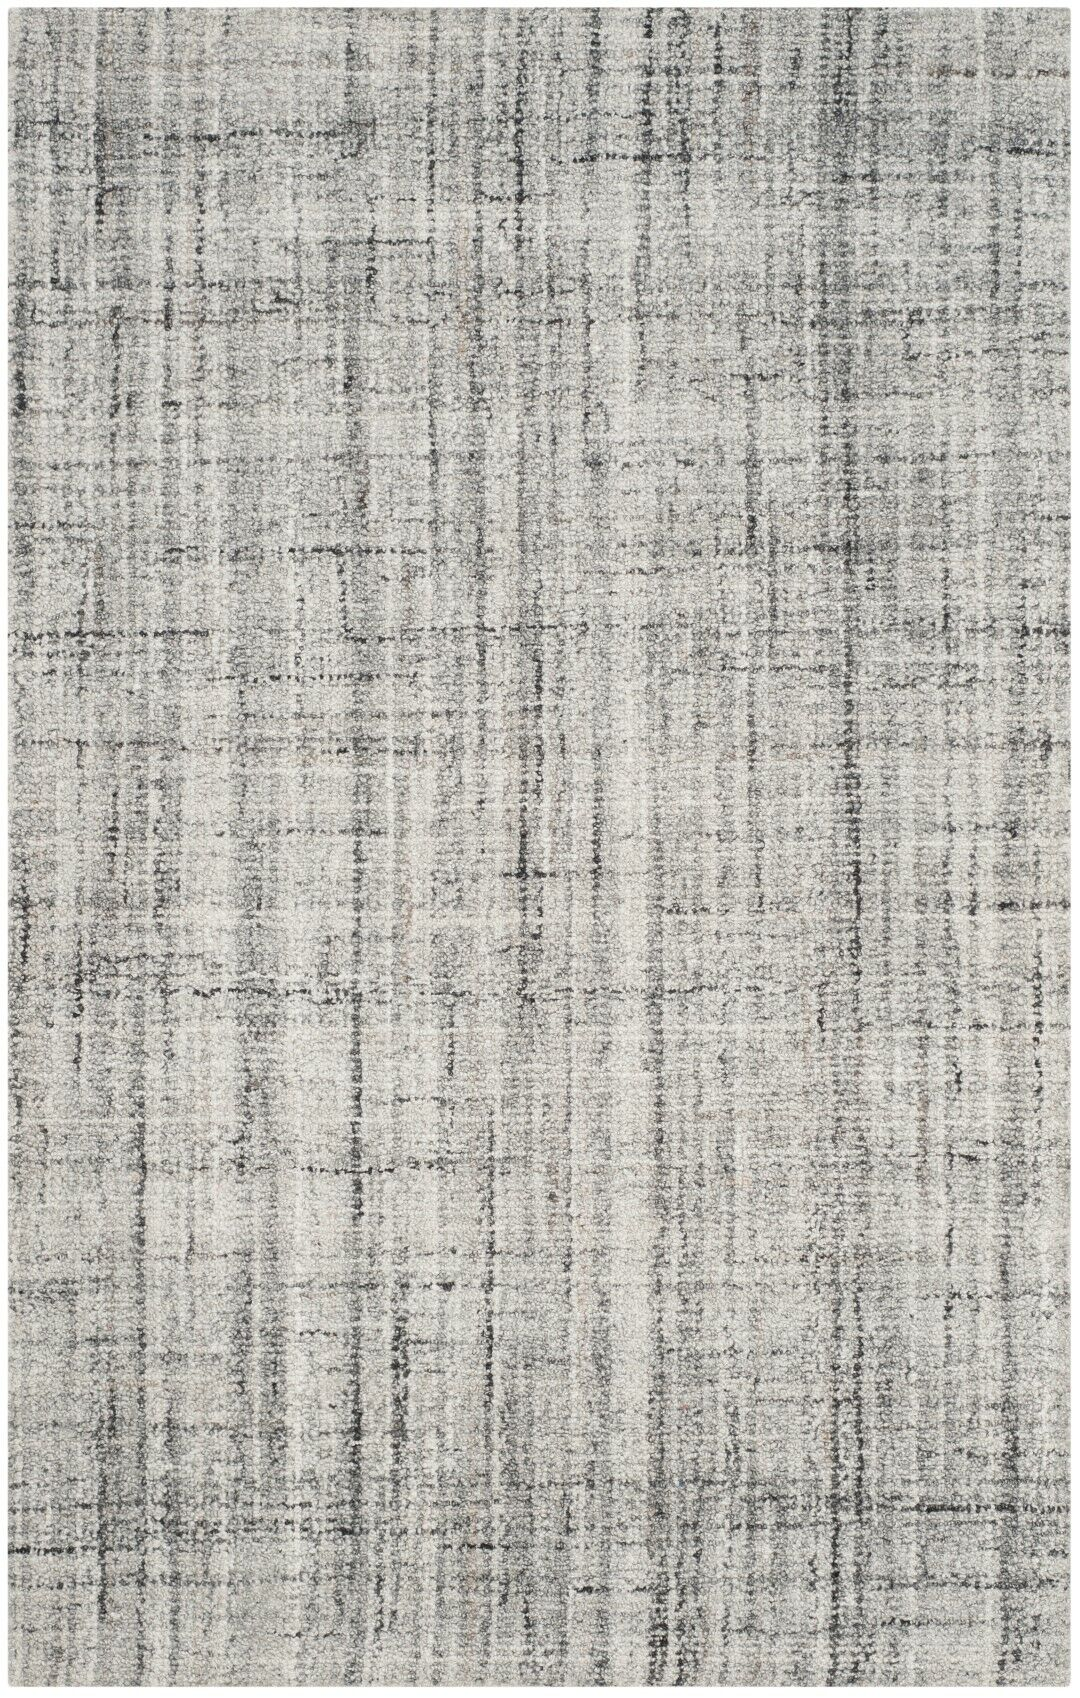 Dustin Hand-Tufted Gray Area Rug Rug Size: Square 6' x 6'